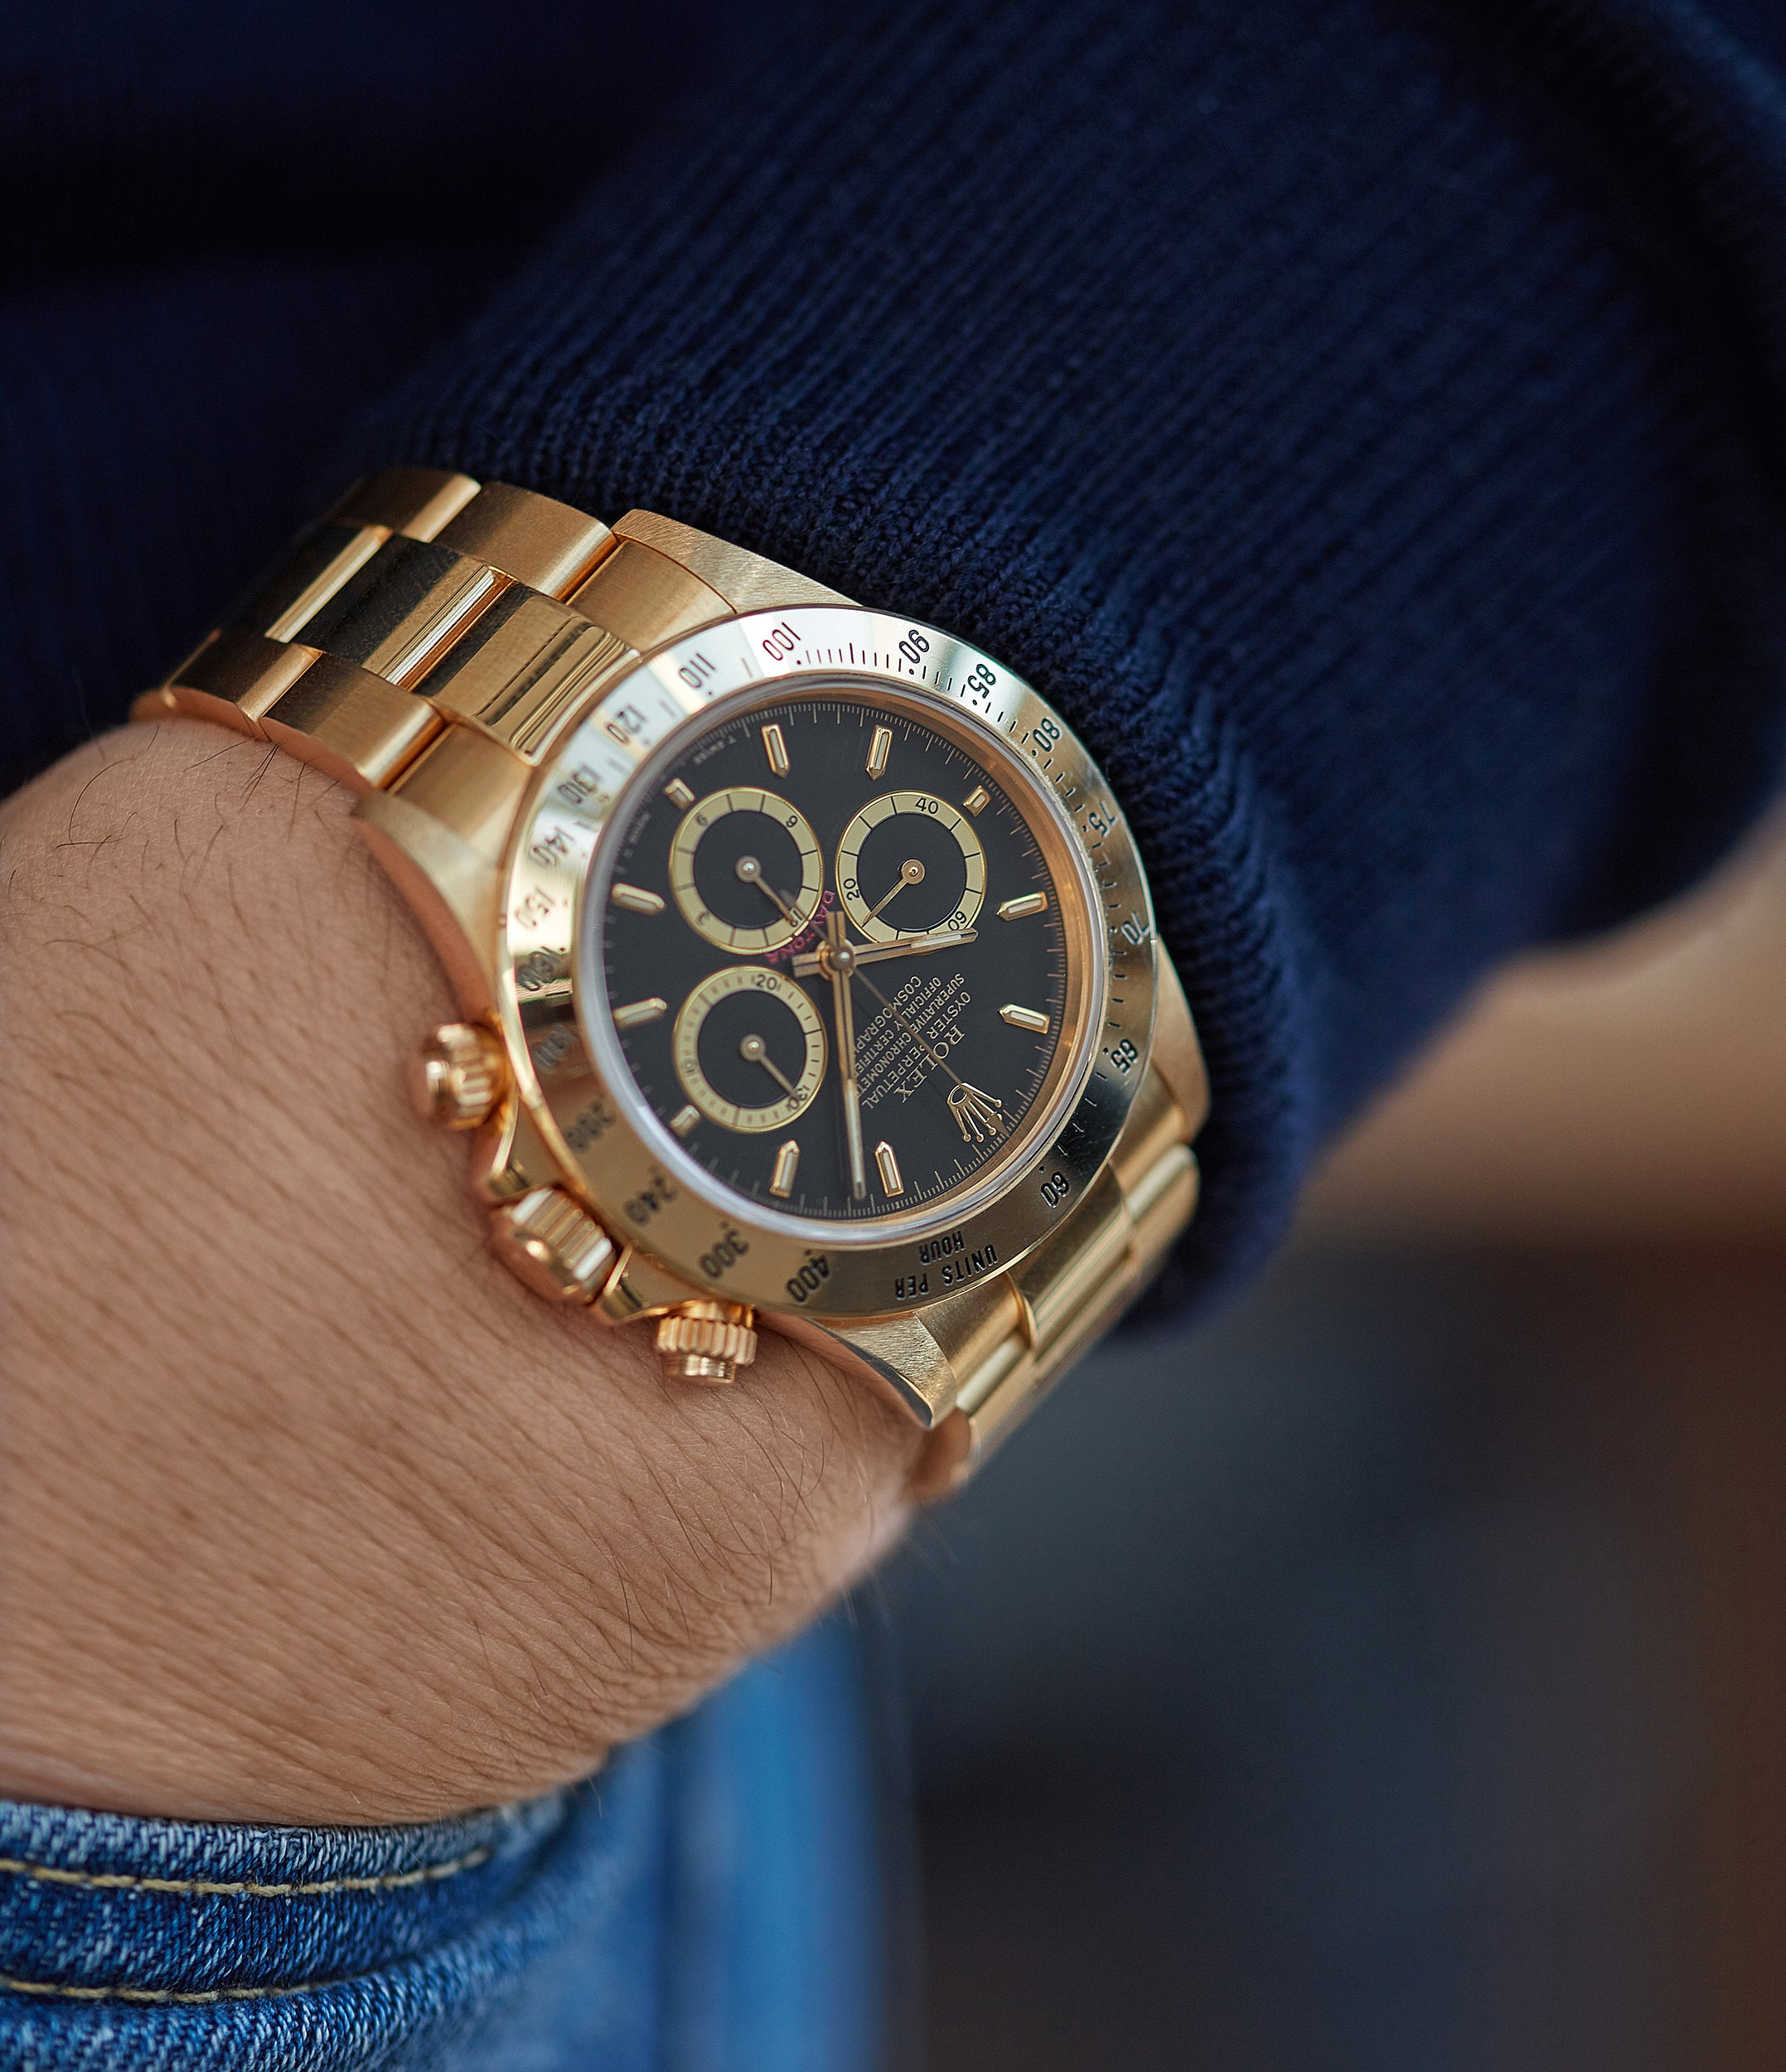 men's wristwatch Rolex 16528 Daytona Zenith yellow gold black dial full set vintage watch for sale online at A Collected Man London UK specialist of rare watches